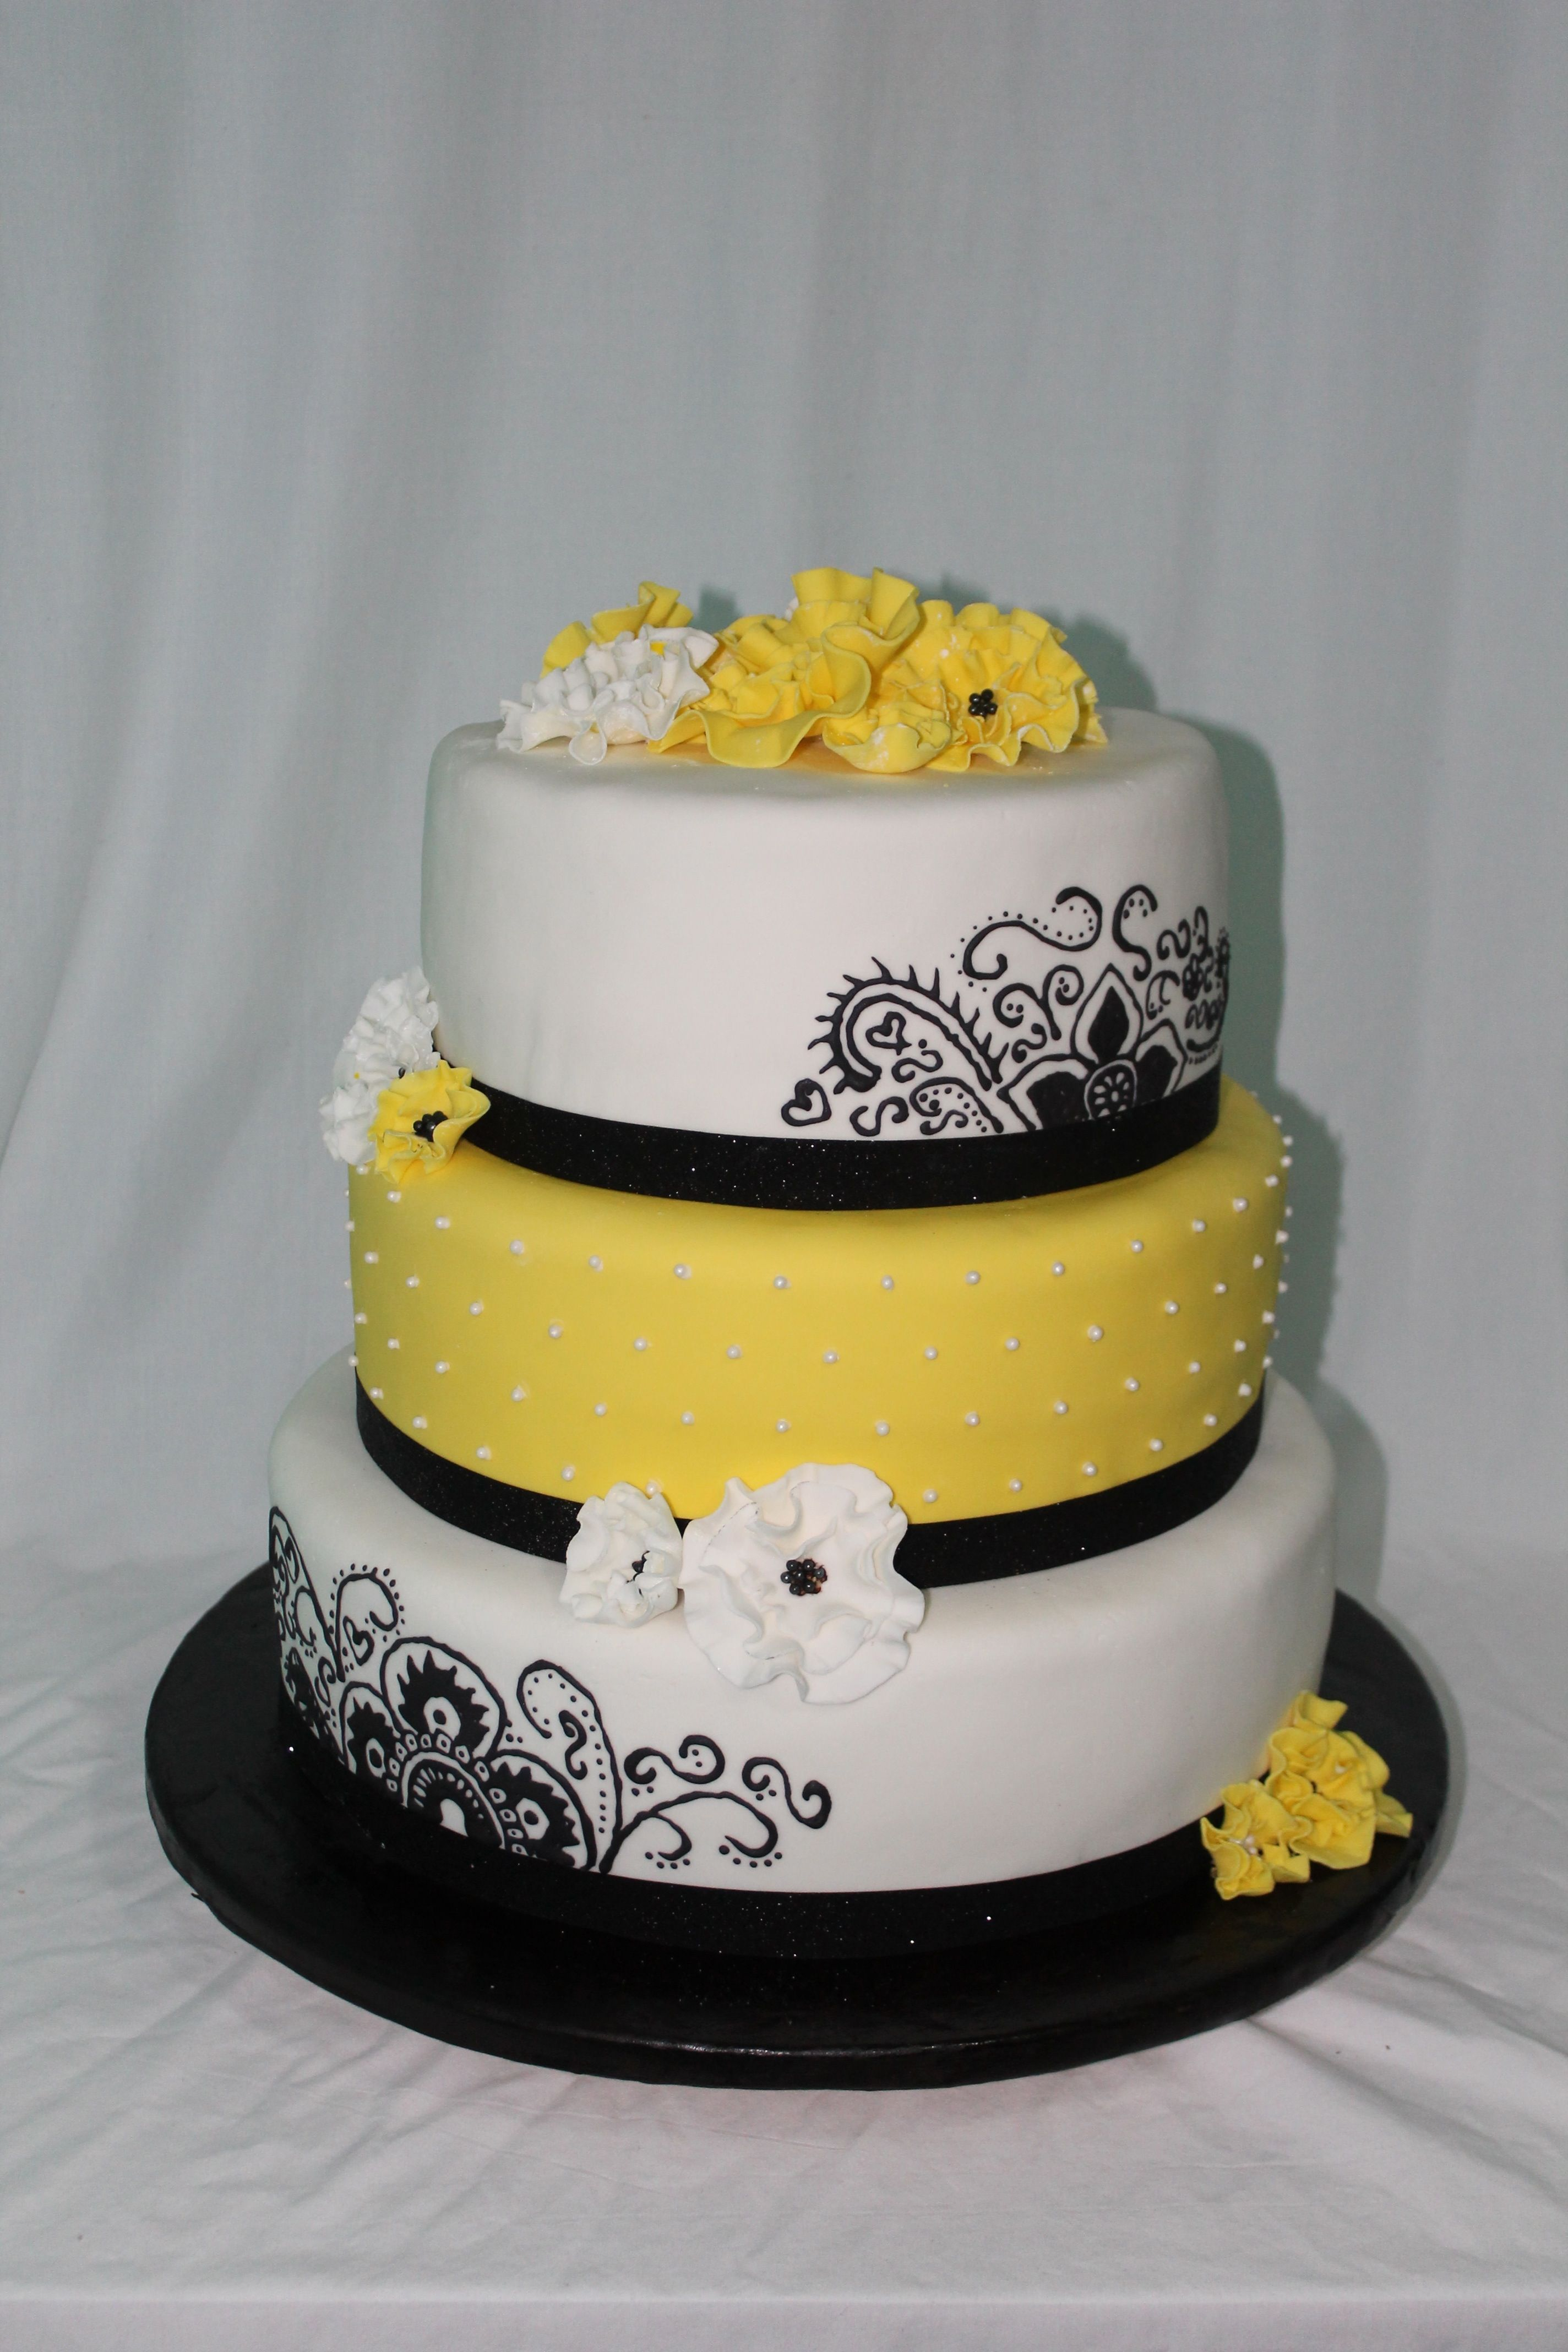 A Pretty Yellow And Black Cake To Celebrate An 18th Birthday Cakes